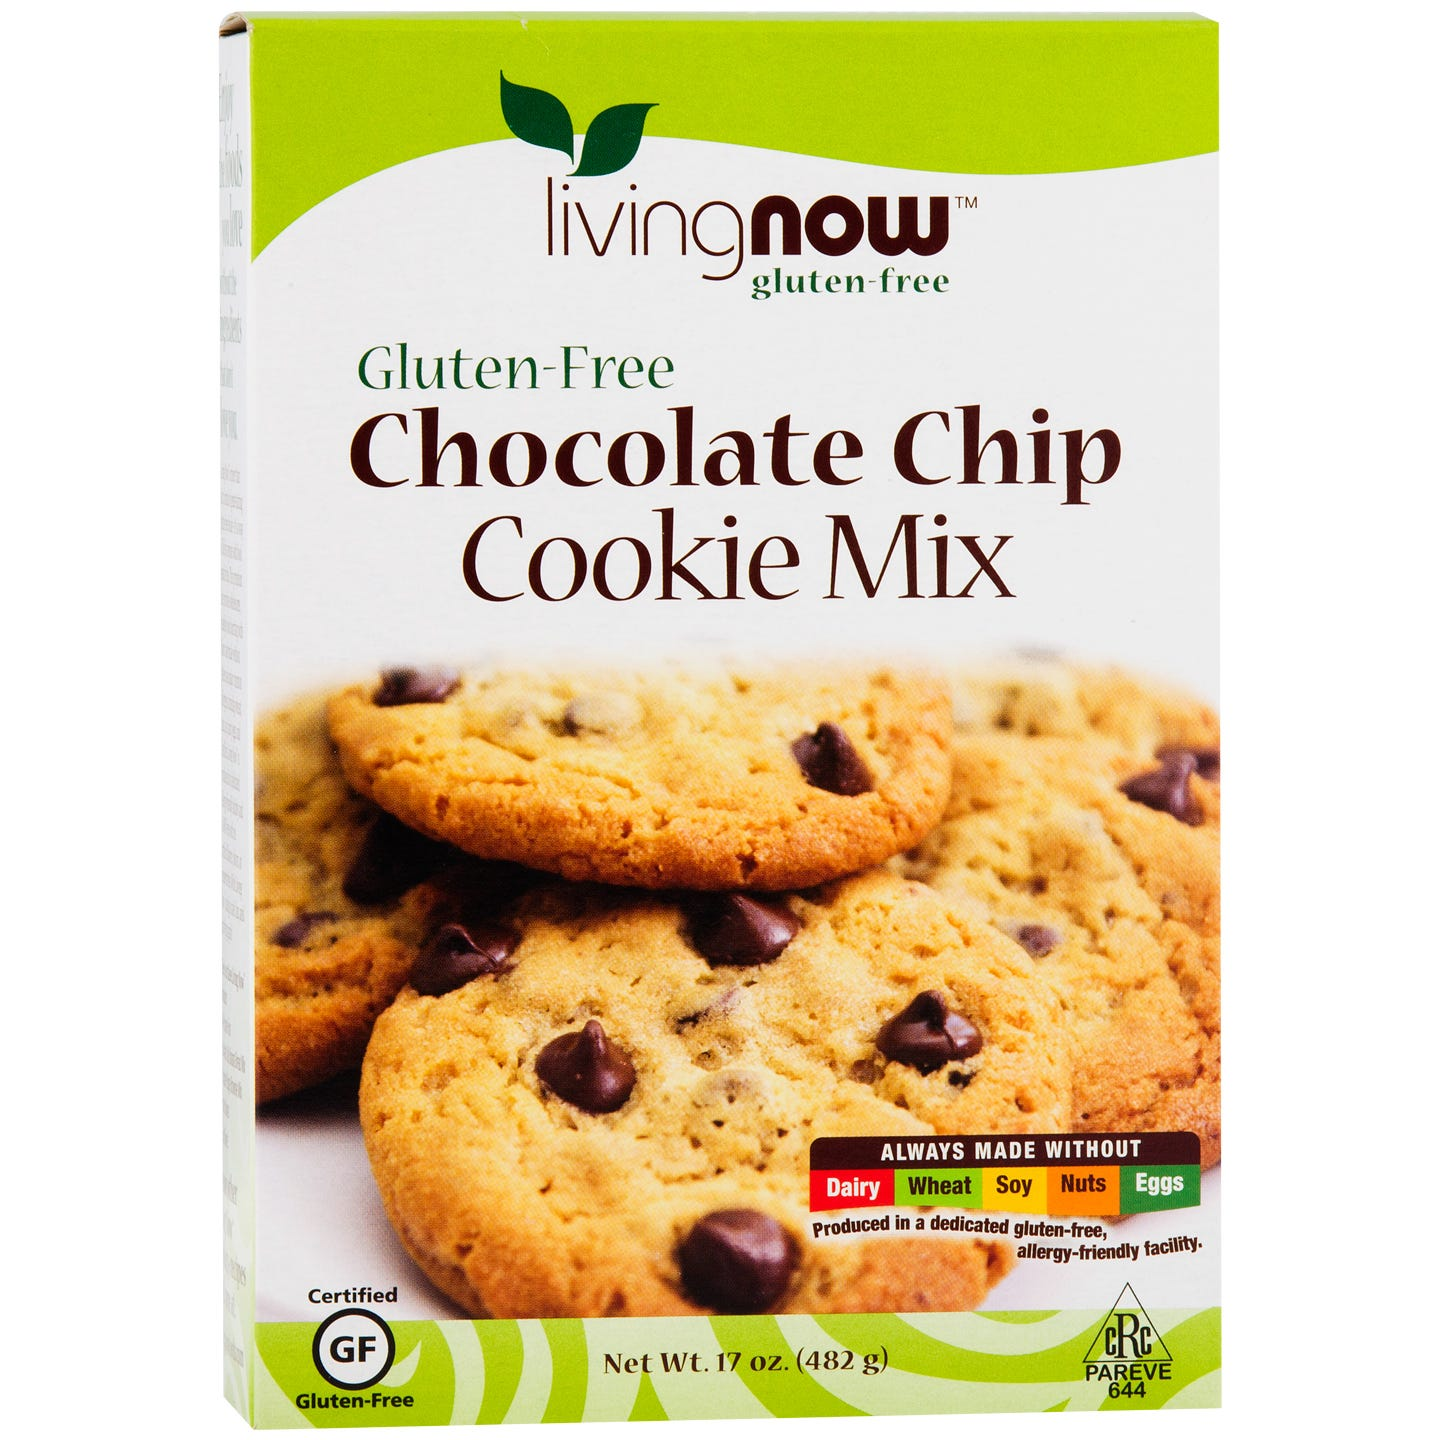 Living Now Gluten Free Cookie Mix Chocolate Chip 17oz, NOW Foods - Rapid Diet Weight Loss Products Shop